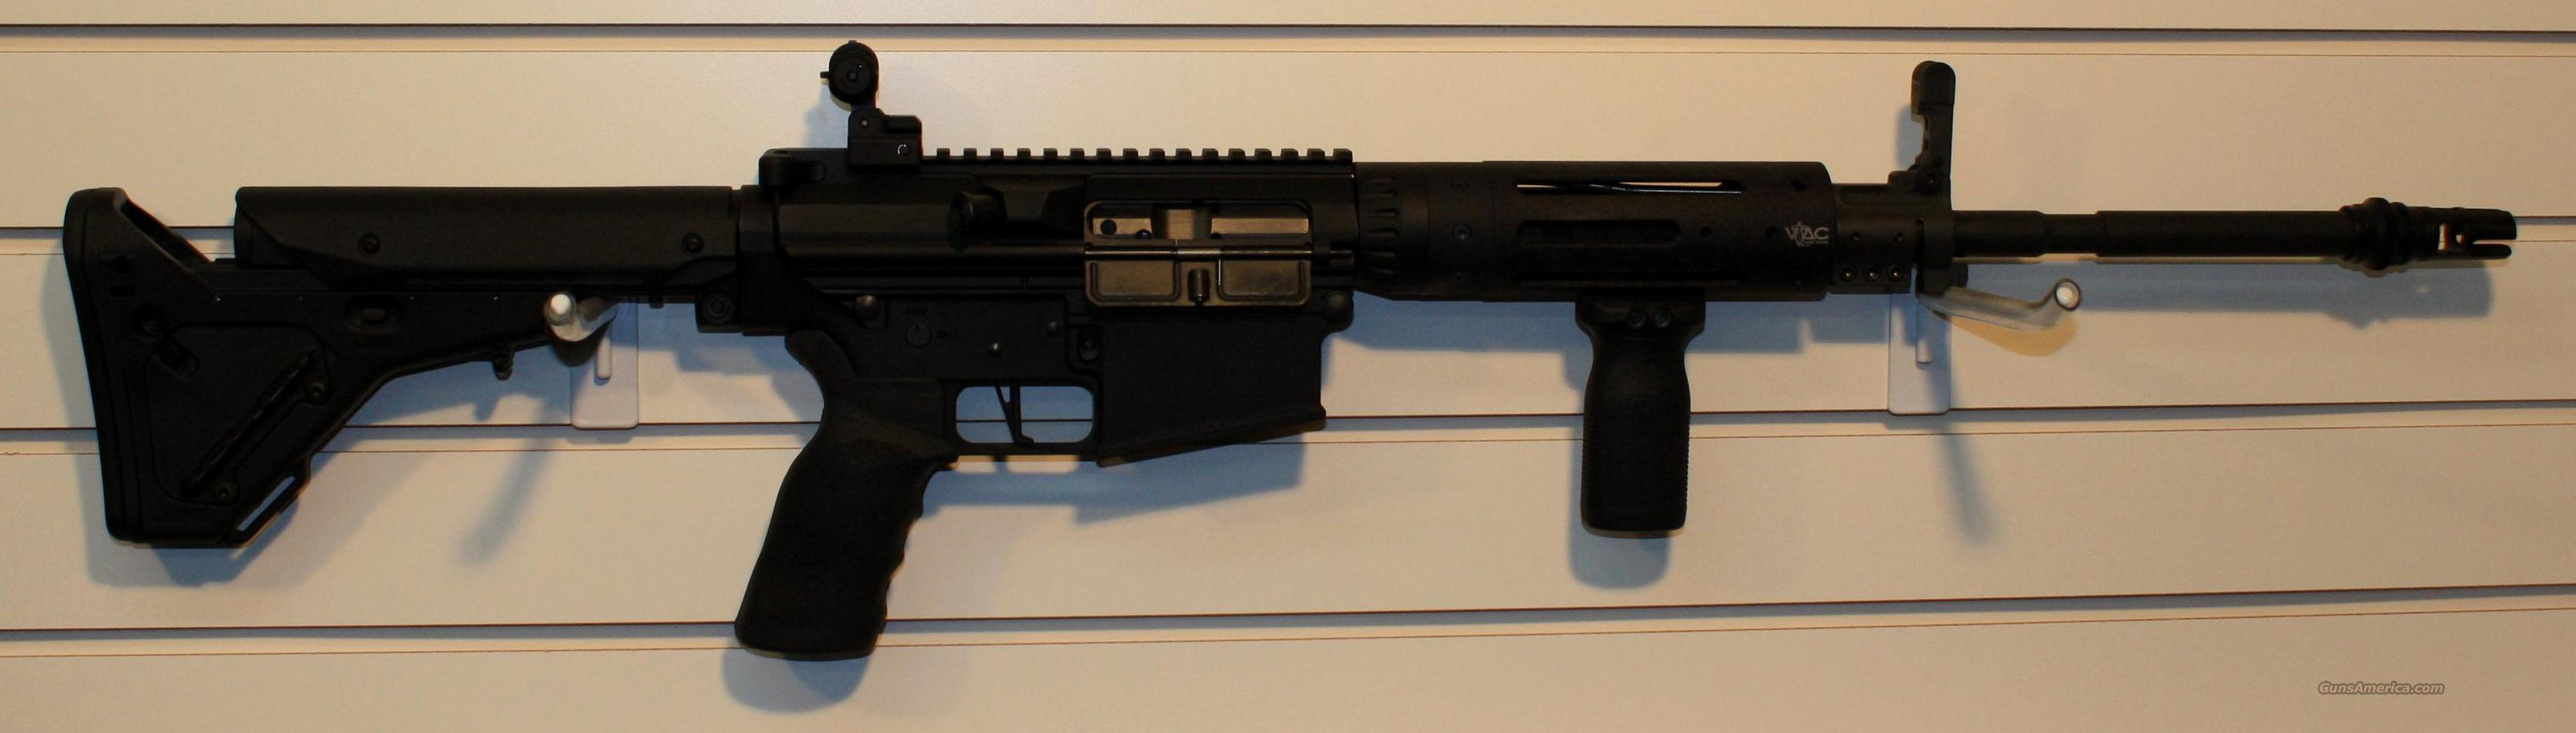 DPMS CUSTOM LR-308 AP4 MANY EXTRAS  Guns > Rifles > DPMS - Panther Arms > Complete Rifle